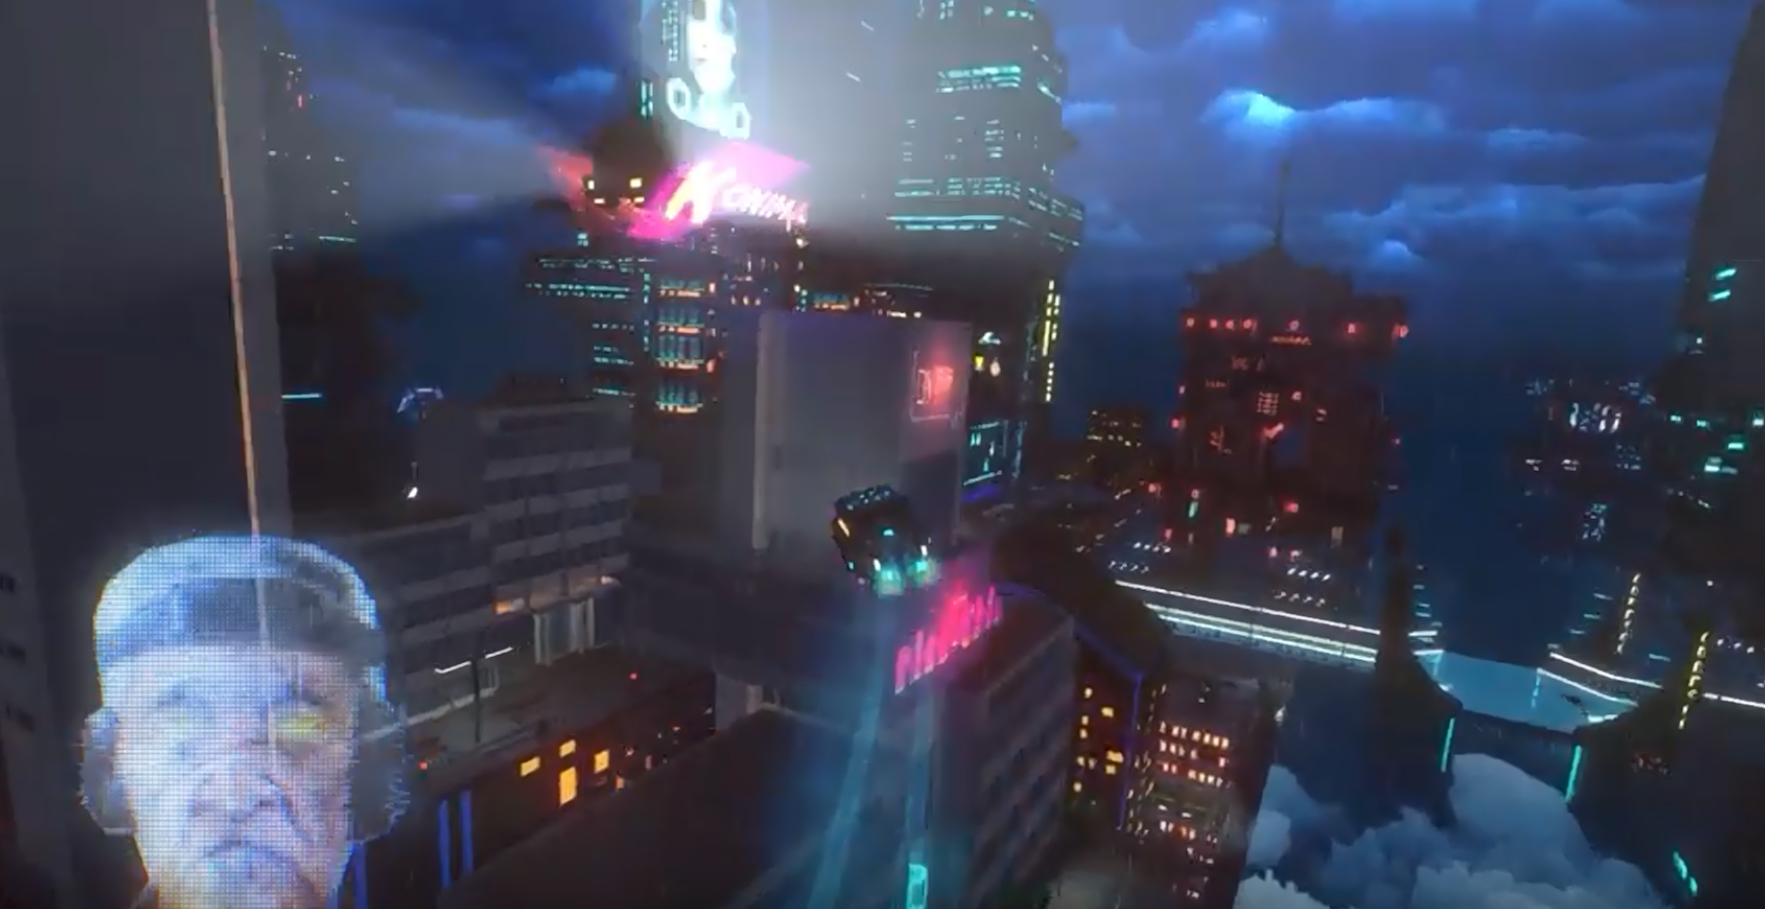 The Cyberpunk Delivery Game Cloudpunk Releases In October For Consoles